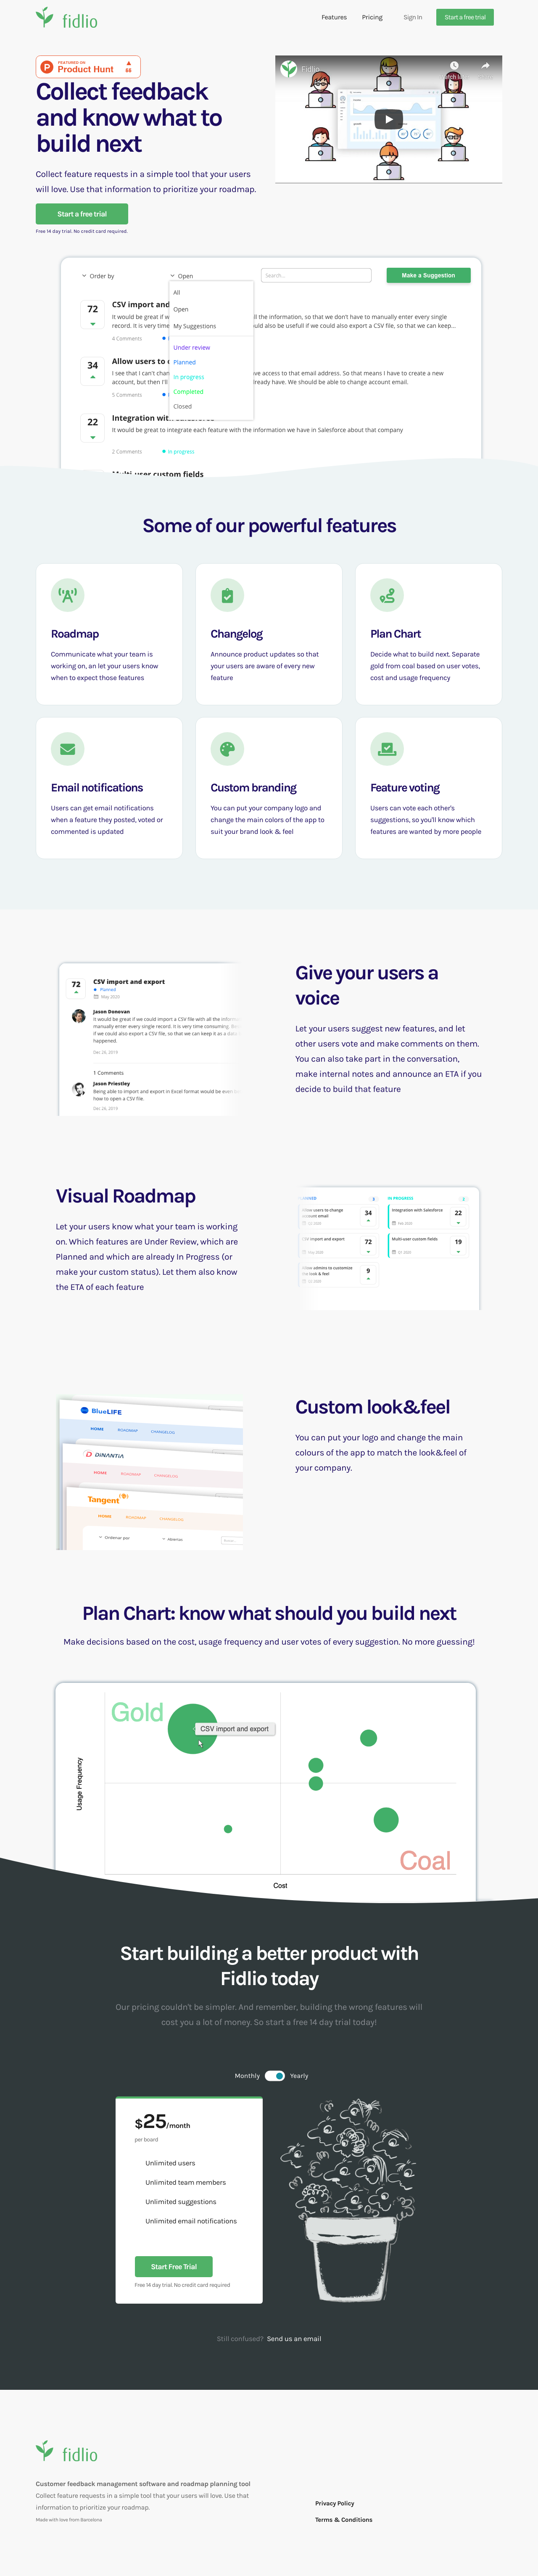 Example of Design for Computers & Electronics, Software, Landing Page by fidlio.com   Landing Page Design